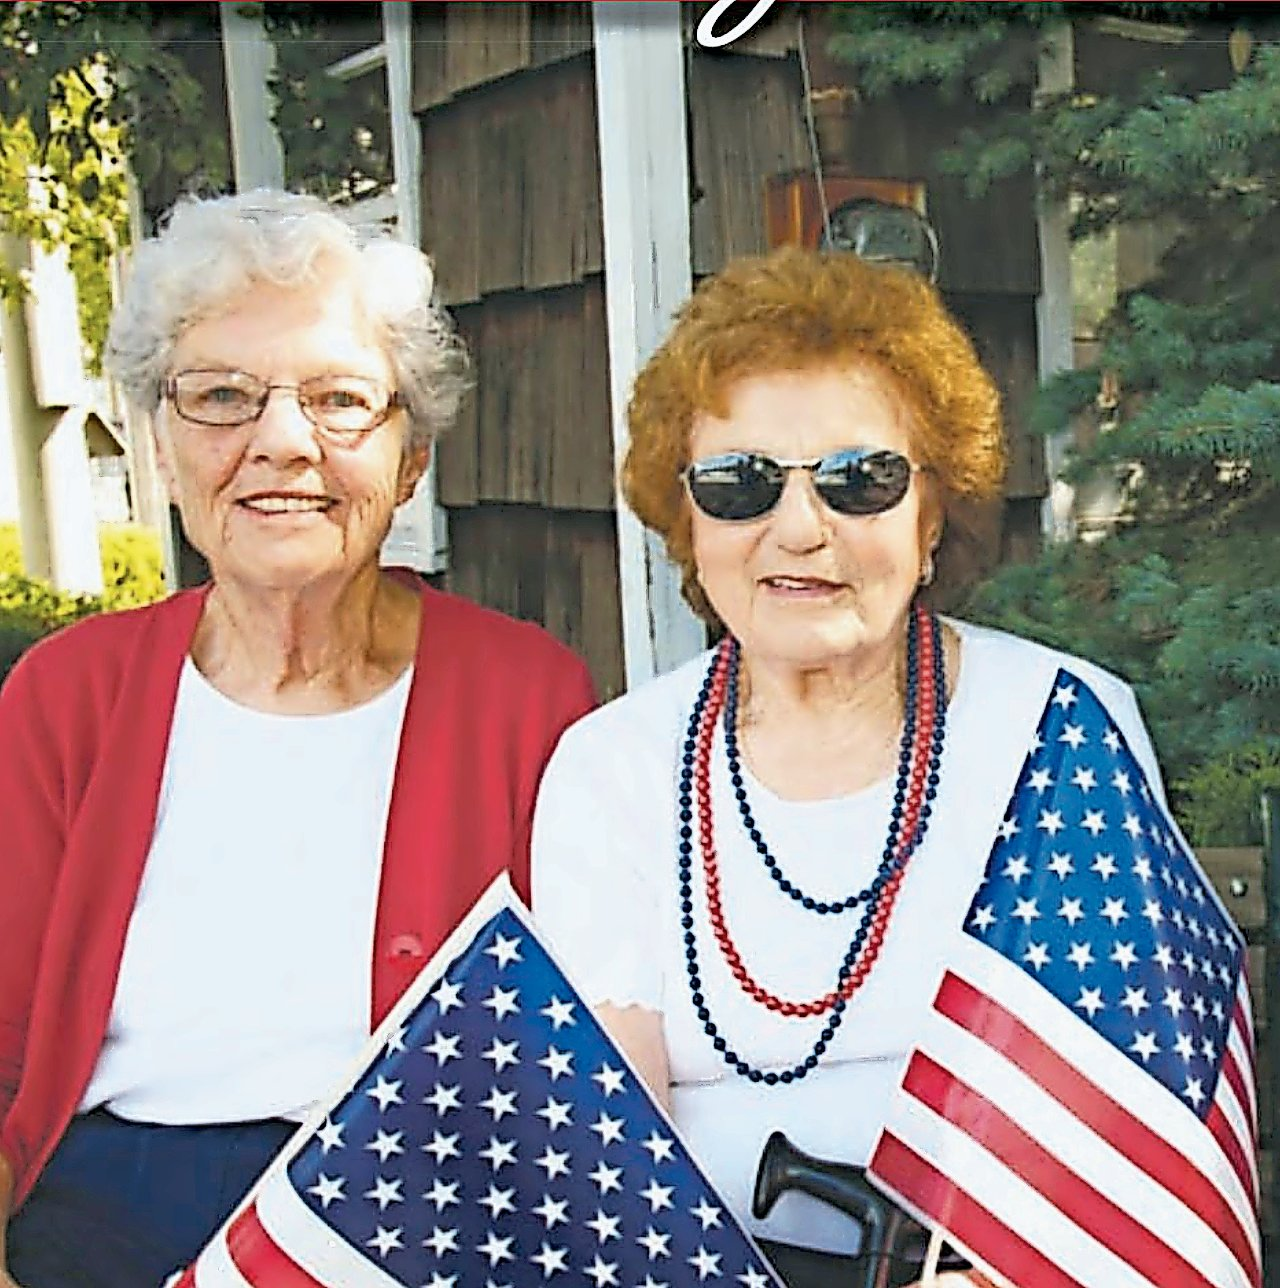 Luce, left, was featured on the cover of the 2013-14 edition of Merrick Herald's Community Guide with Chris Doundoulakis, with whom she attended Merrick's annual Declaration of Independence reading.